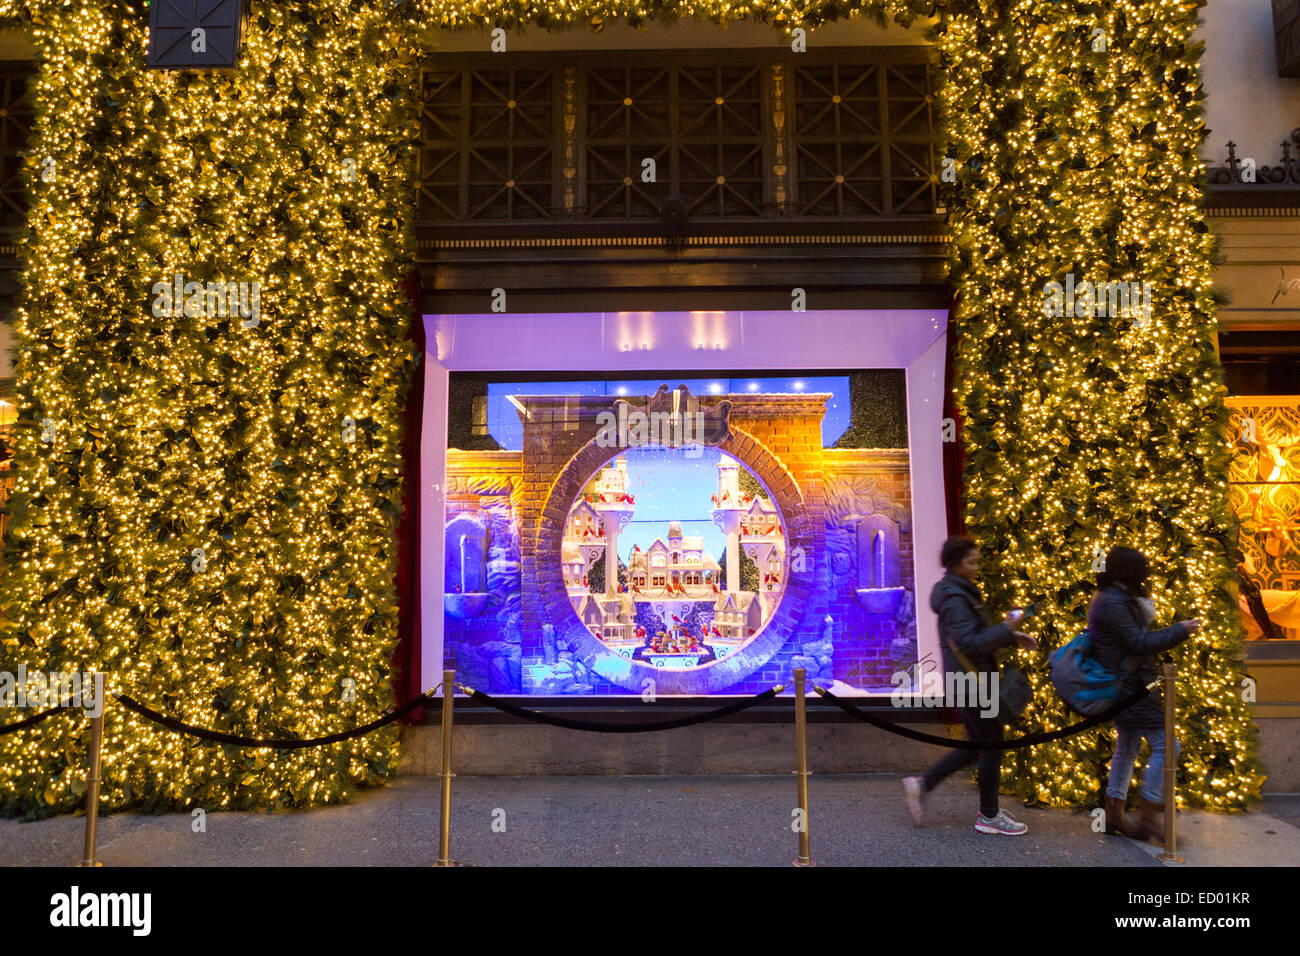 Lord & Taylor 2021 Christmas Windows Photos Christmas Window Holiday Display At Lord Taylor Department Store Stock Photo Alamy